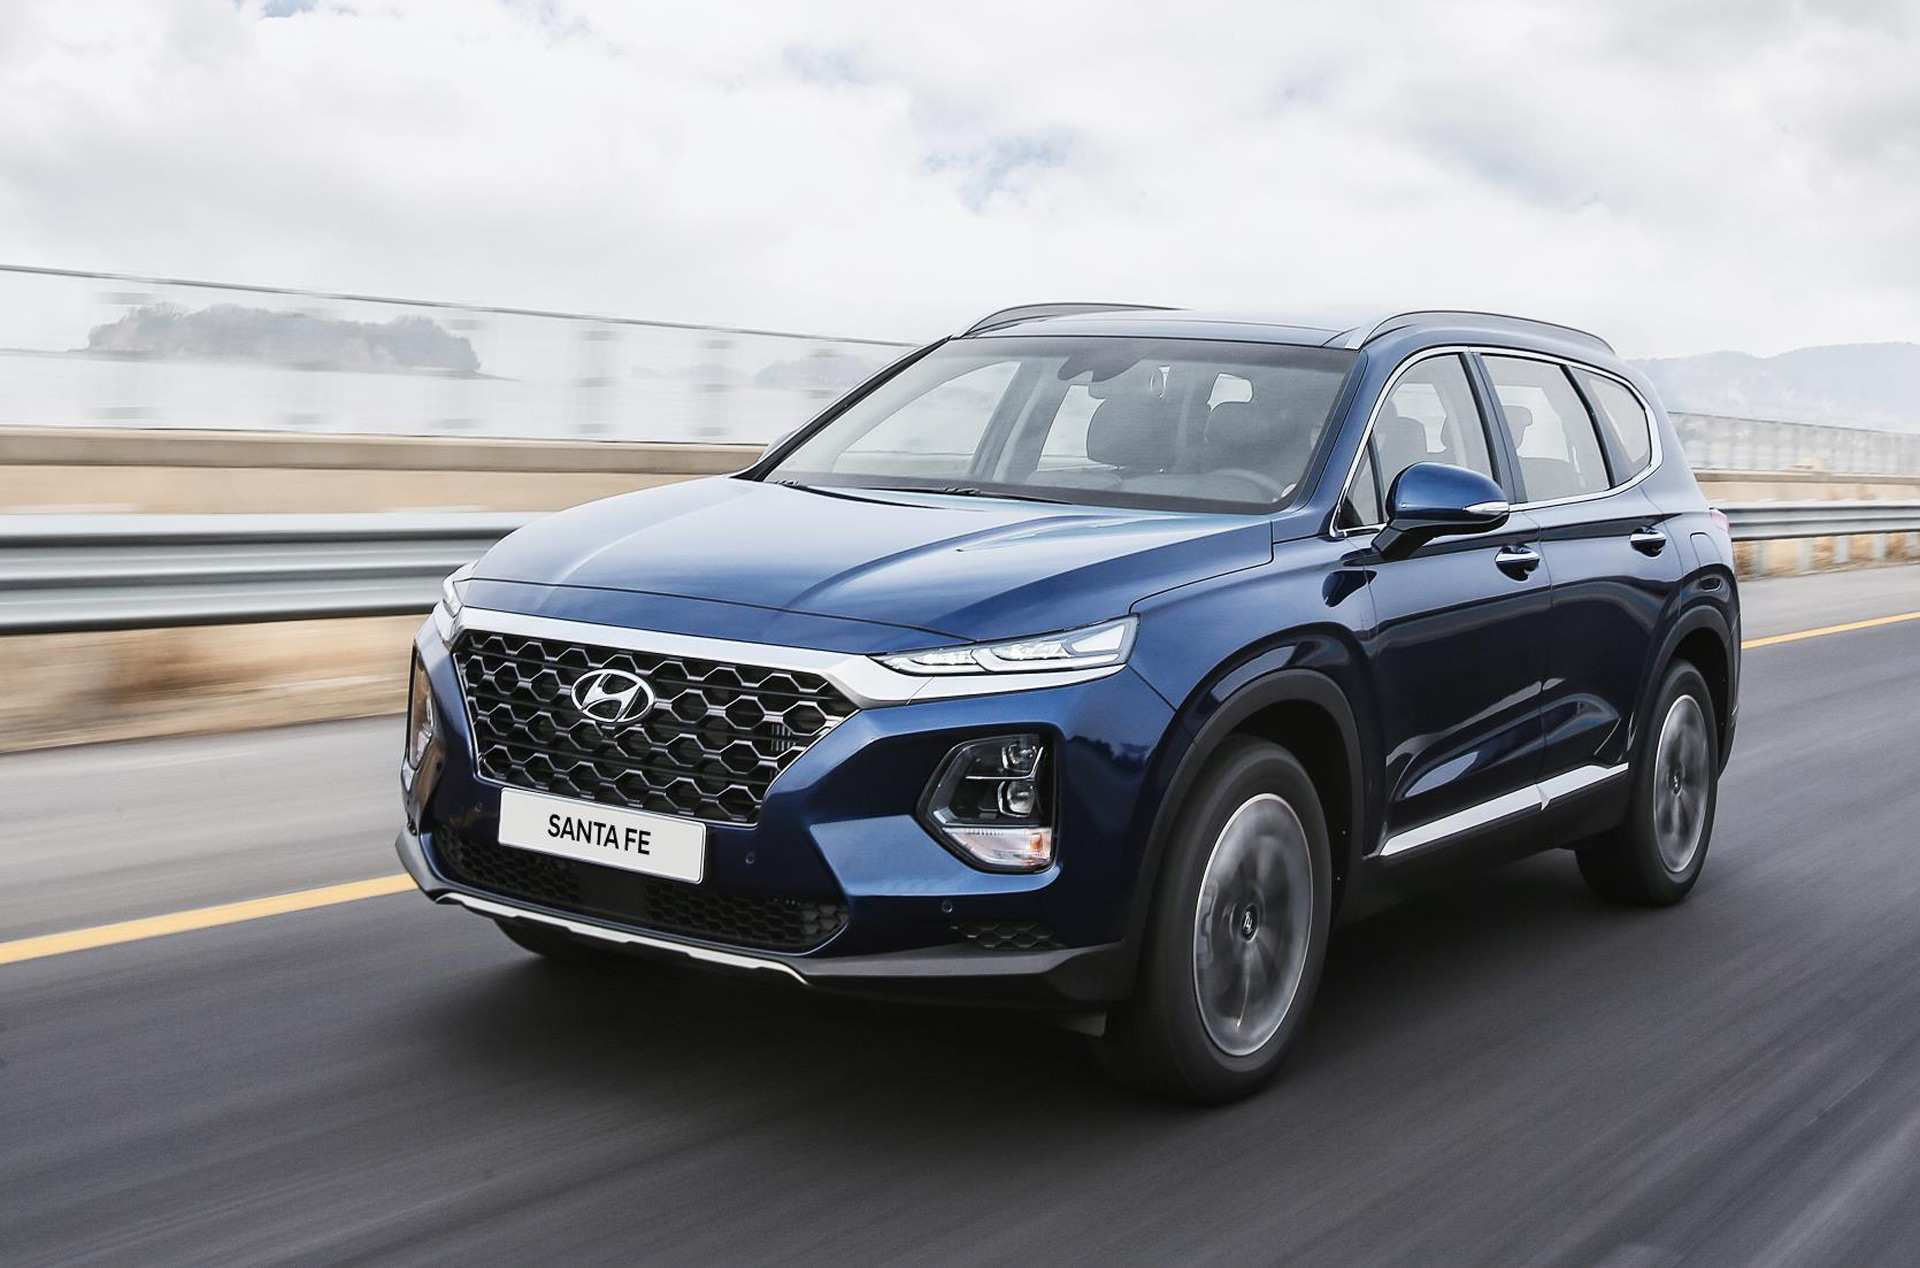 14 Best Review 2020 Hyundai Santa Fe 2018 Pictures with 2020 Hyundai Santa Fe 2018